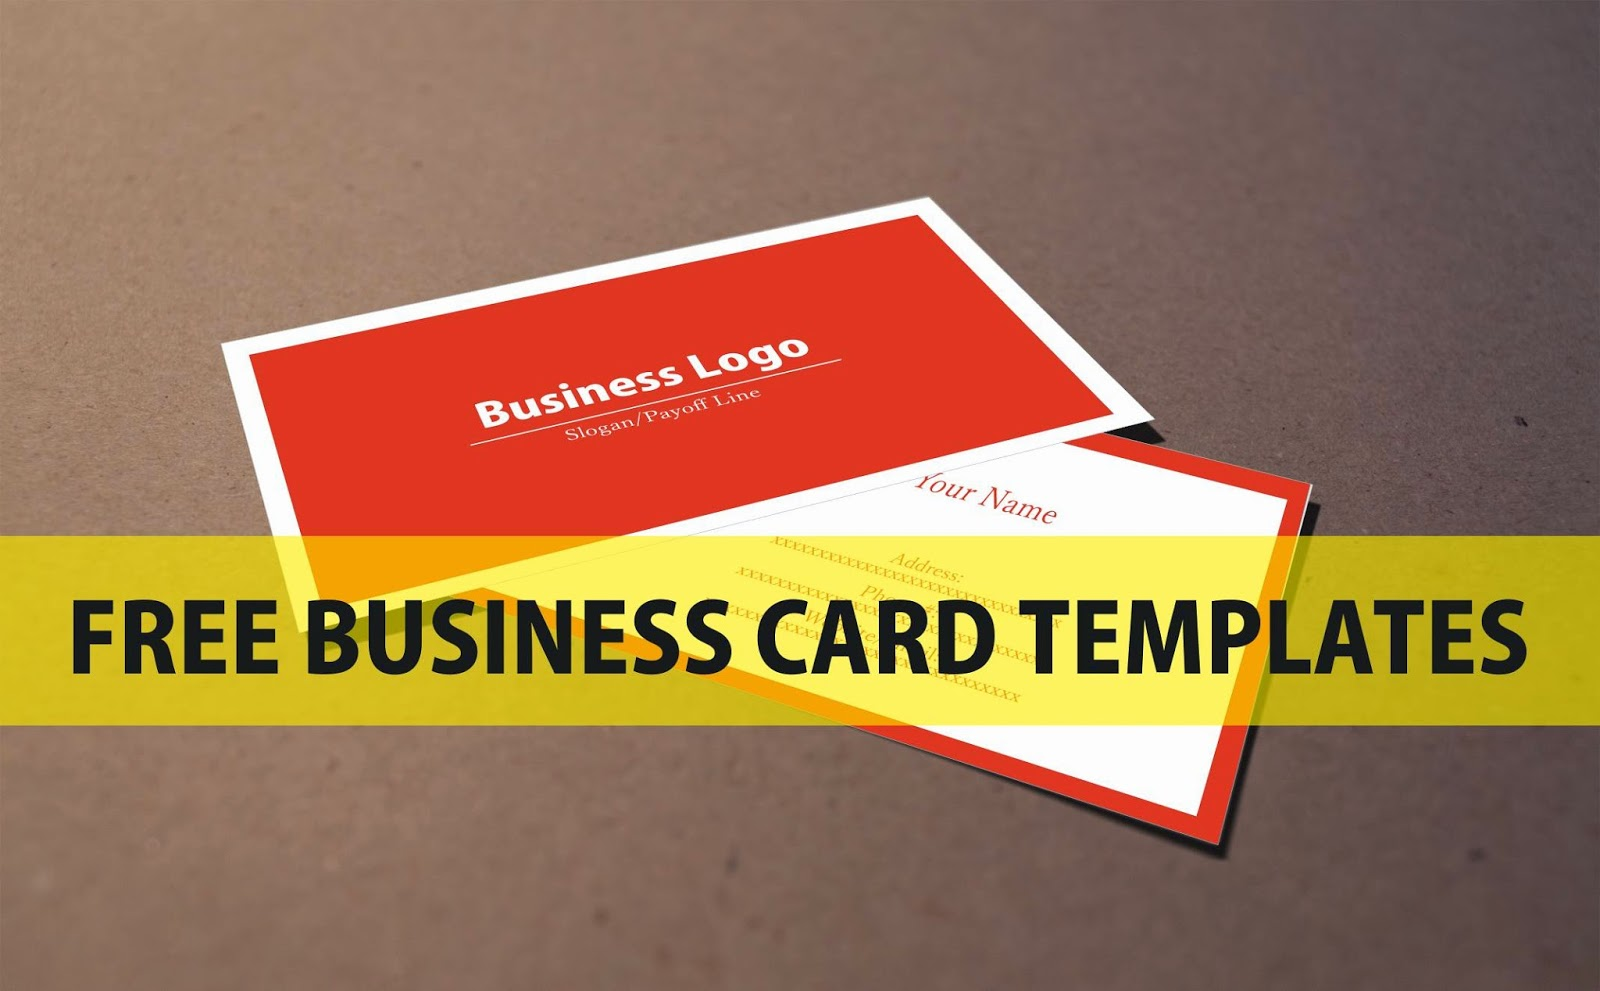 Free business card template download coreldraw file a graphic free business card template download coreldraw file flashek